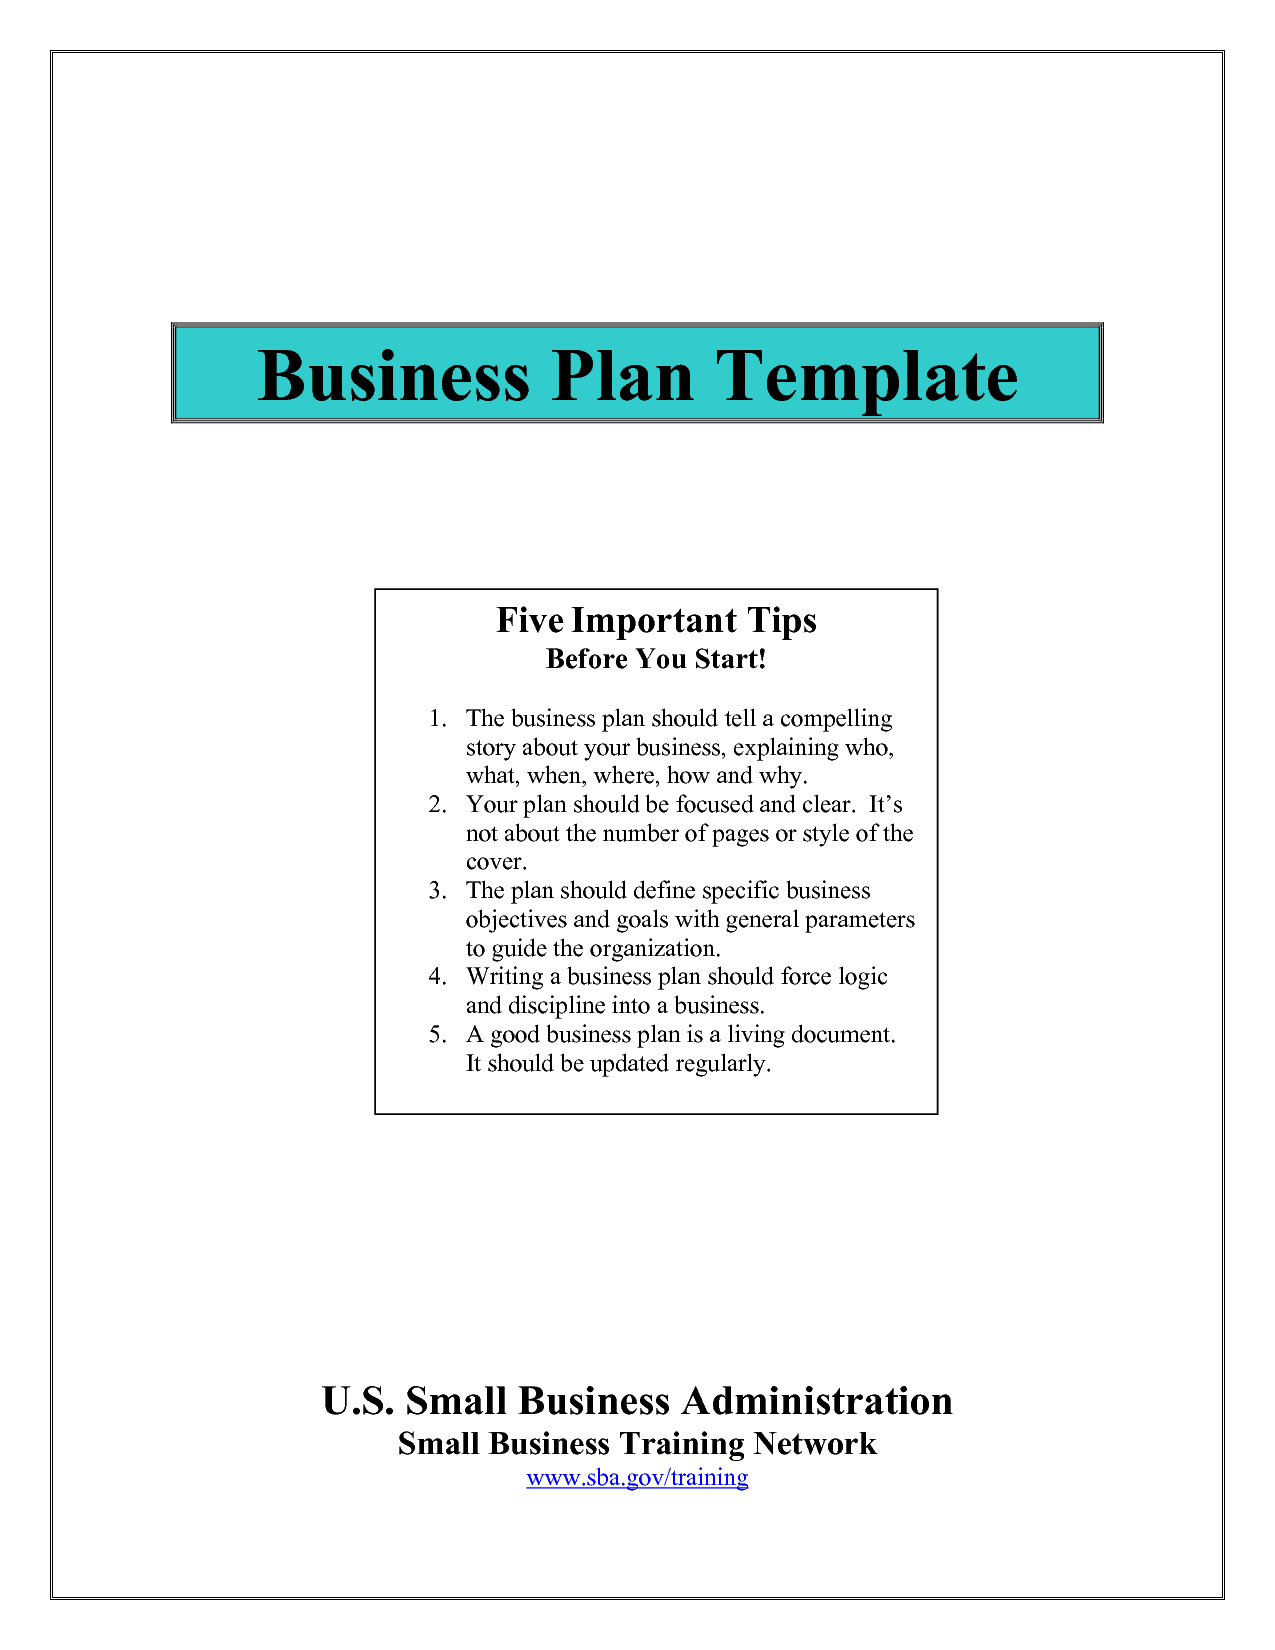 Planwrite Business Plan Writer Software